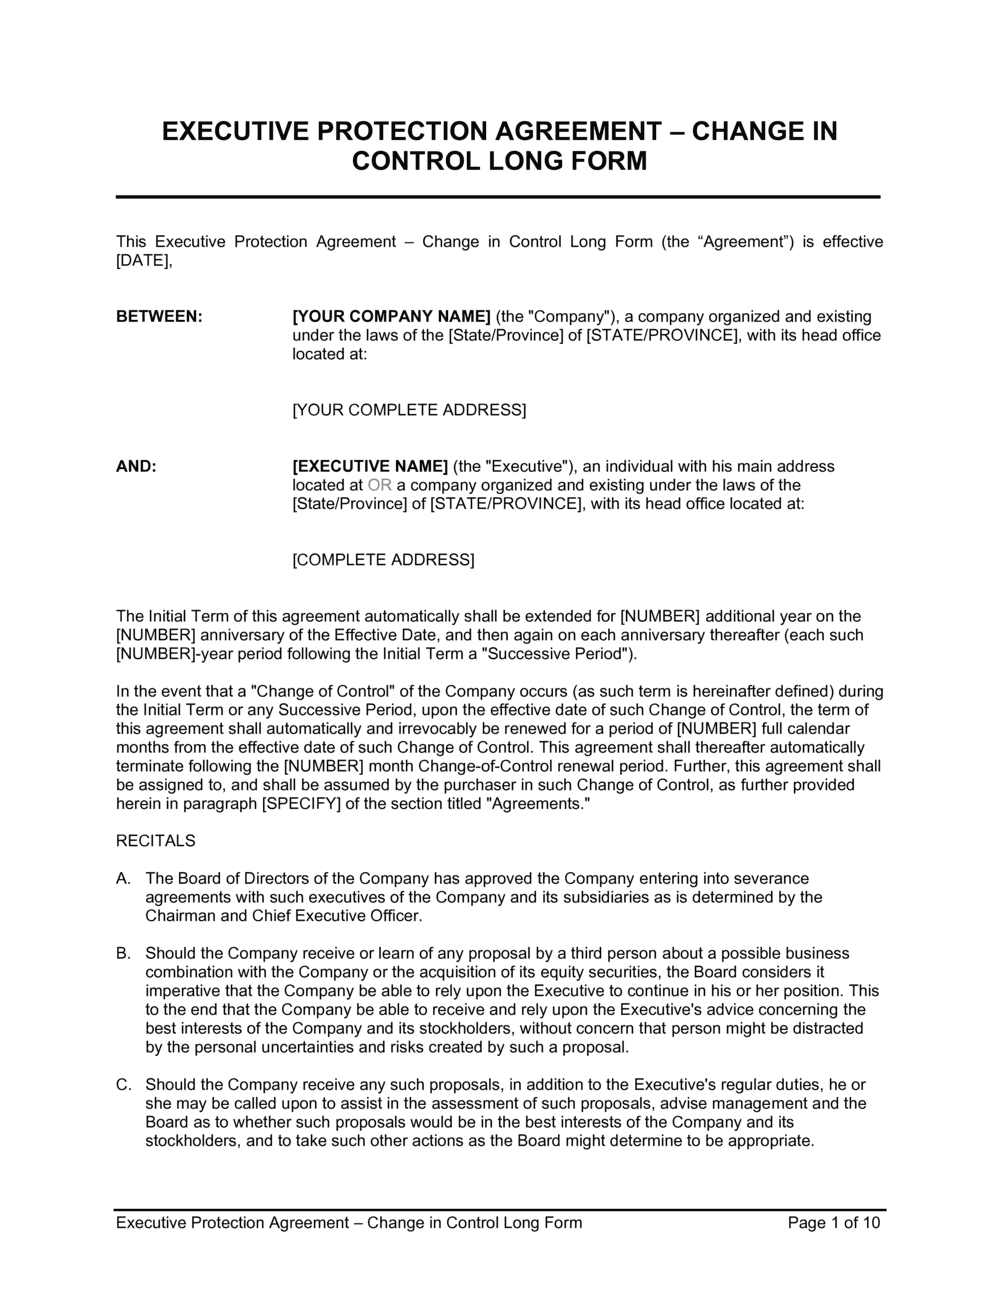 Business-in-a-Box's Executive Protection Agreement Change in Control_Long Form Template